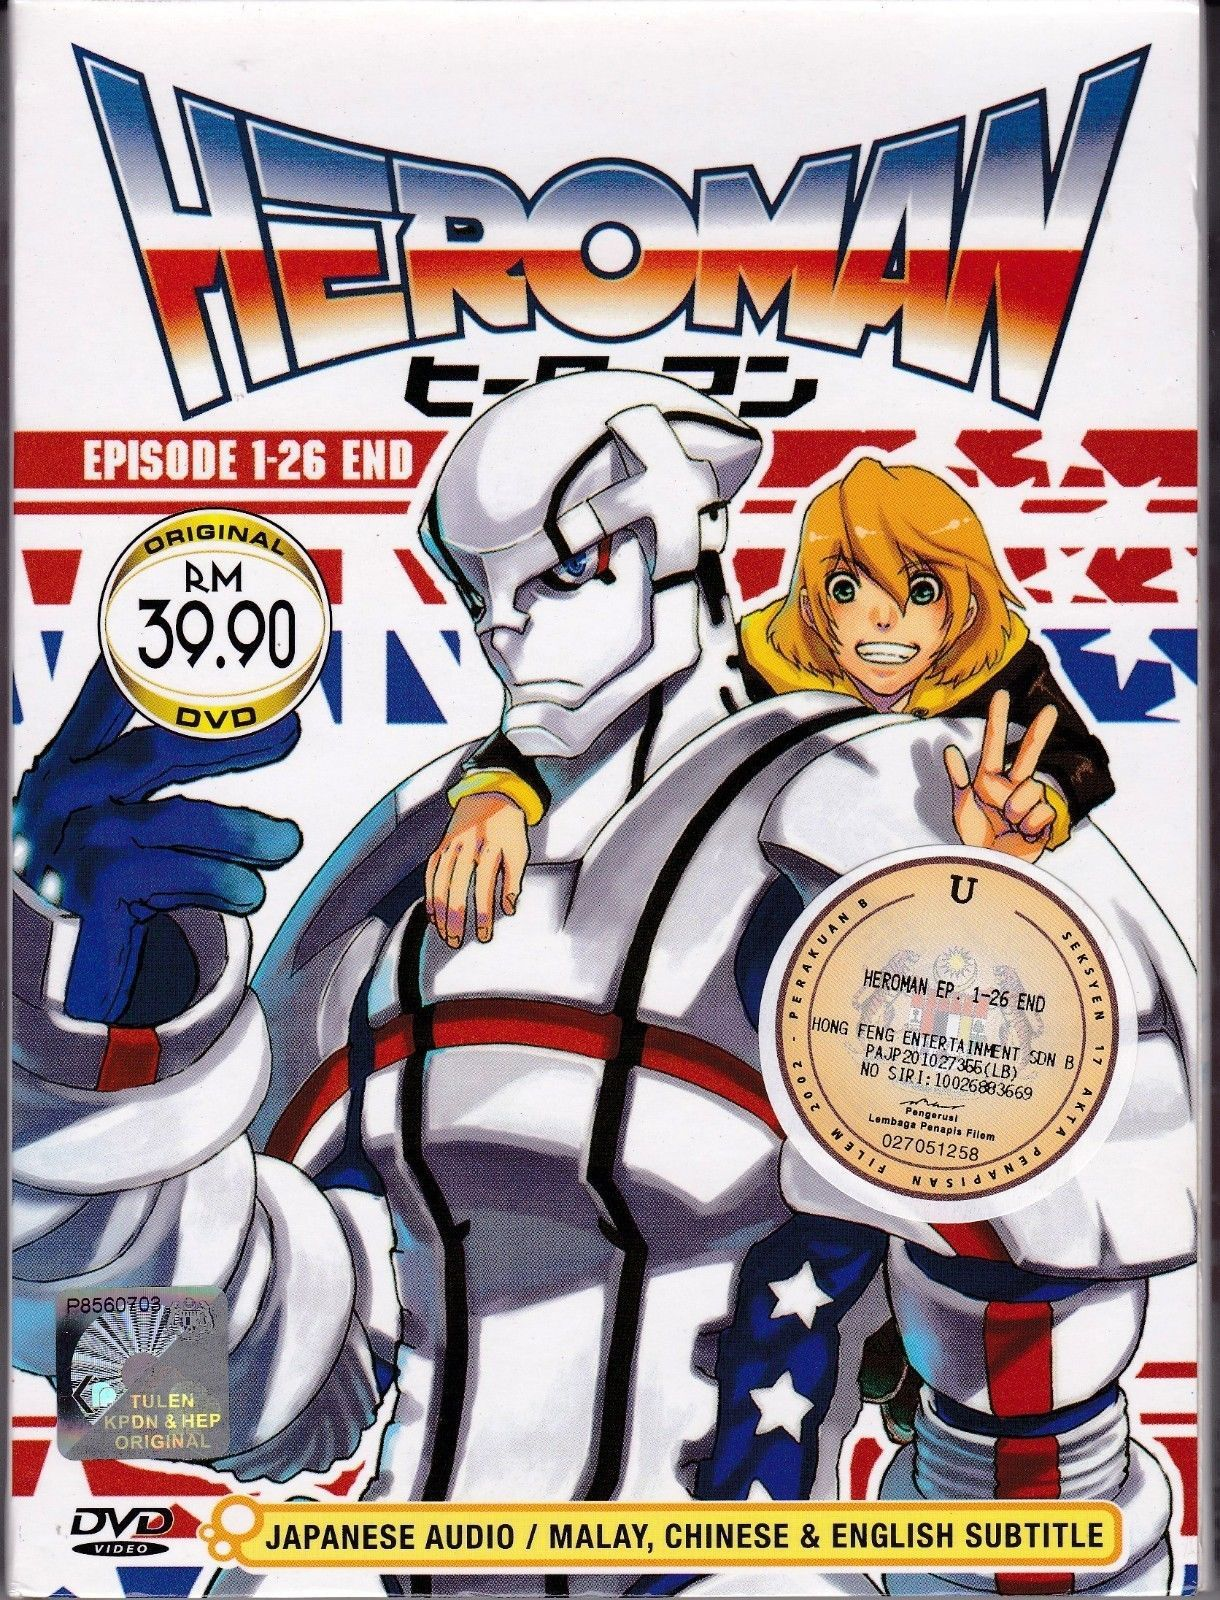 Dvd anime heroman vol 1 26end complete tv series region all free shipping